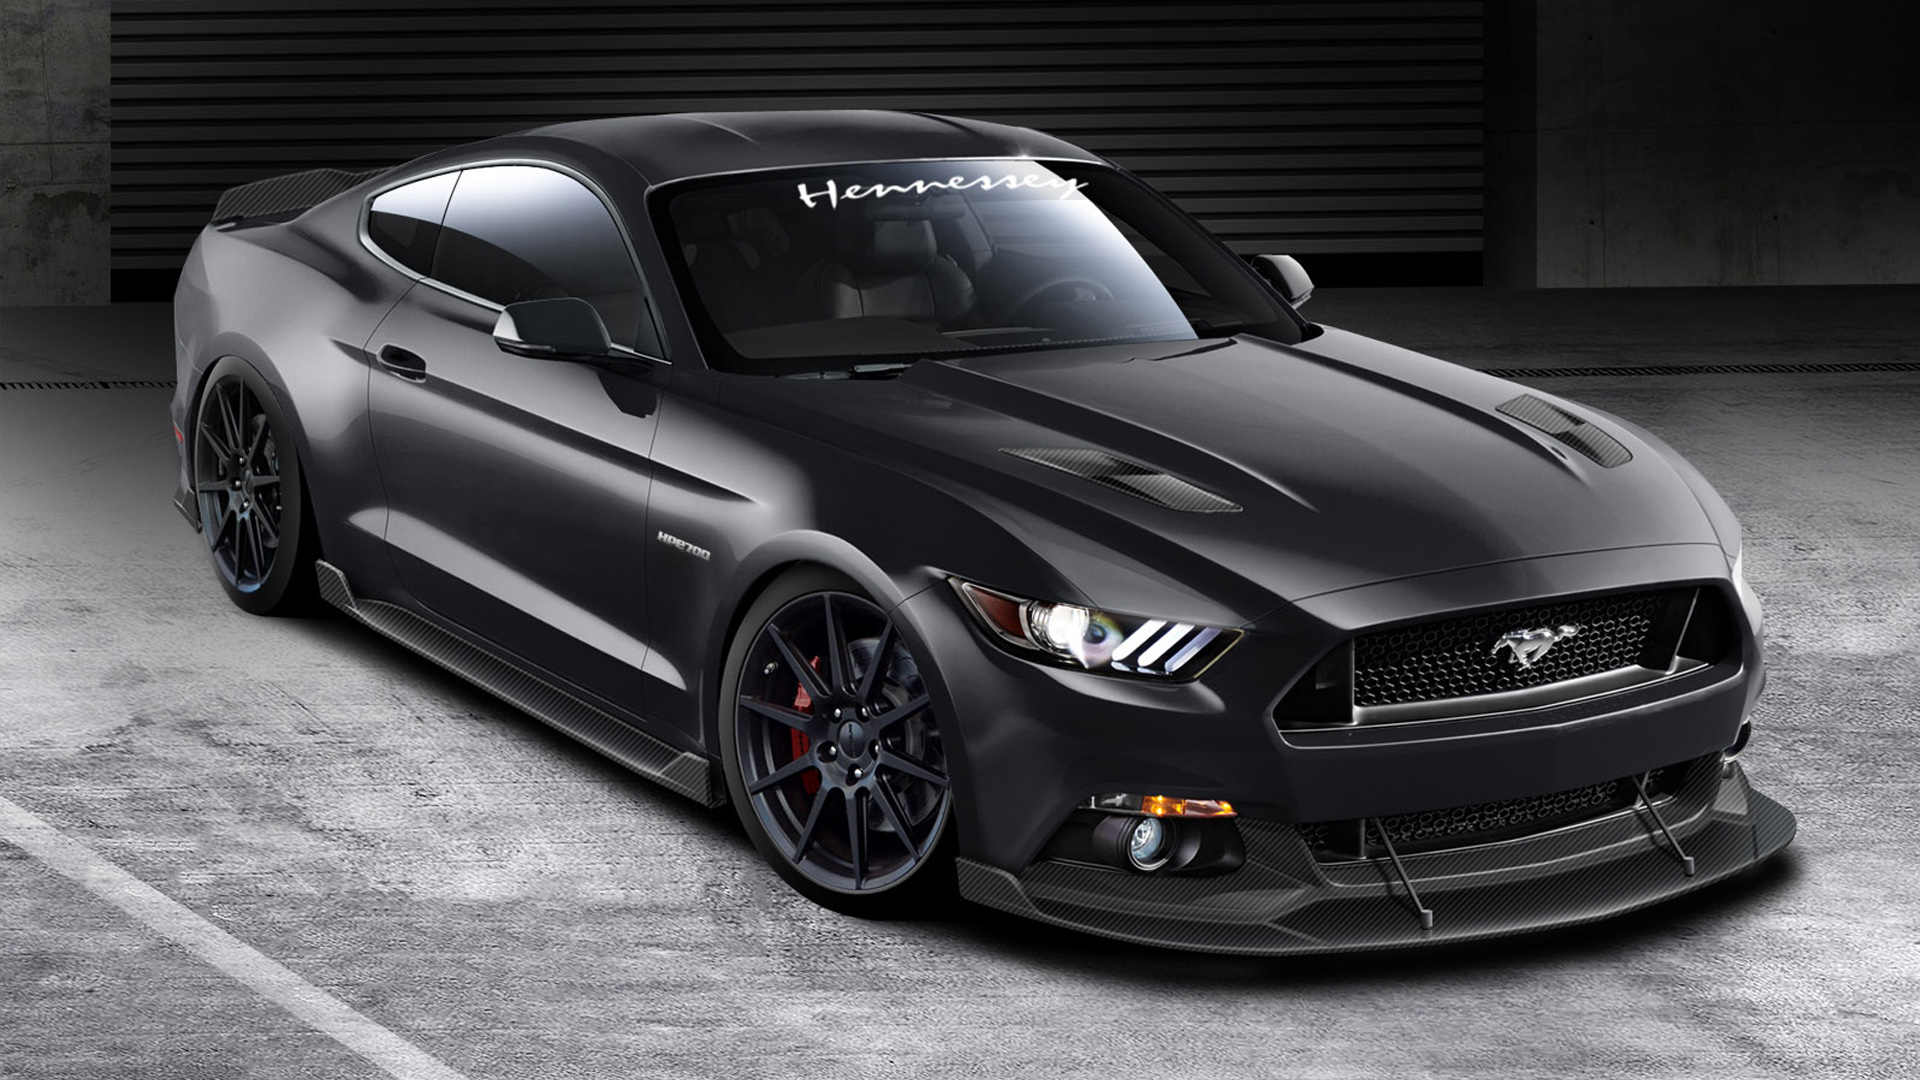 2015 hennessey ford mustang gt wallpaper